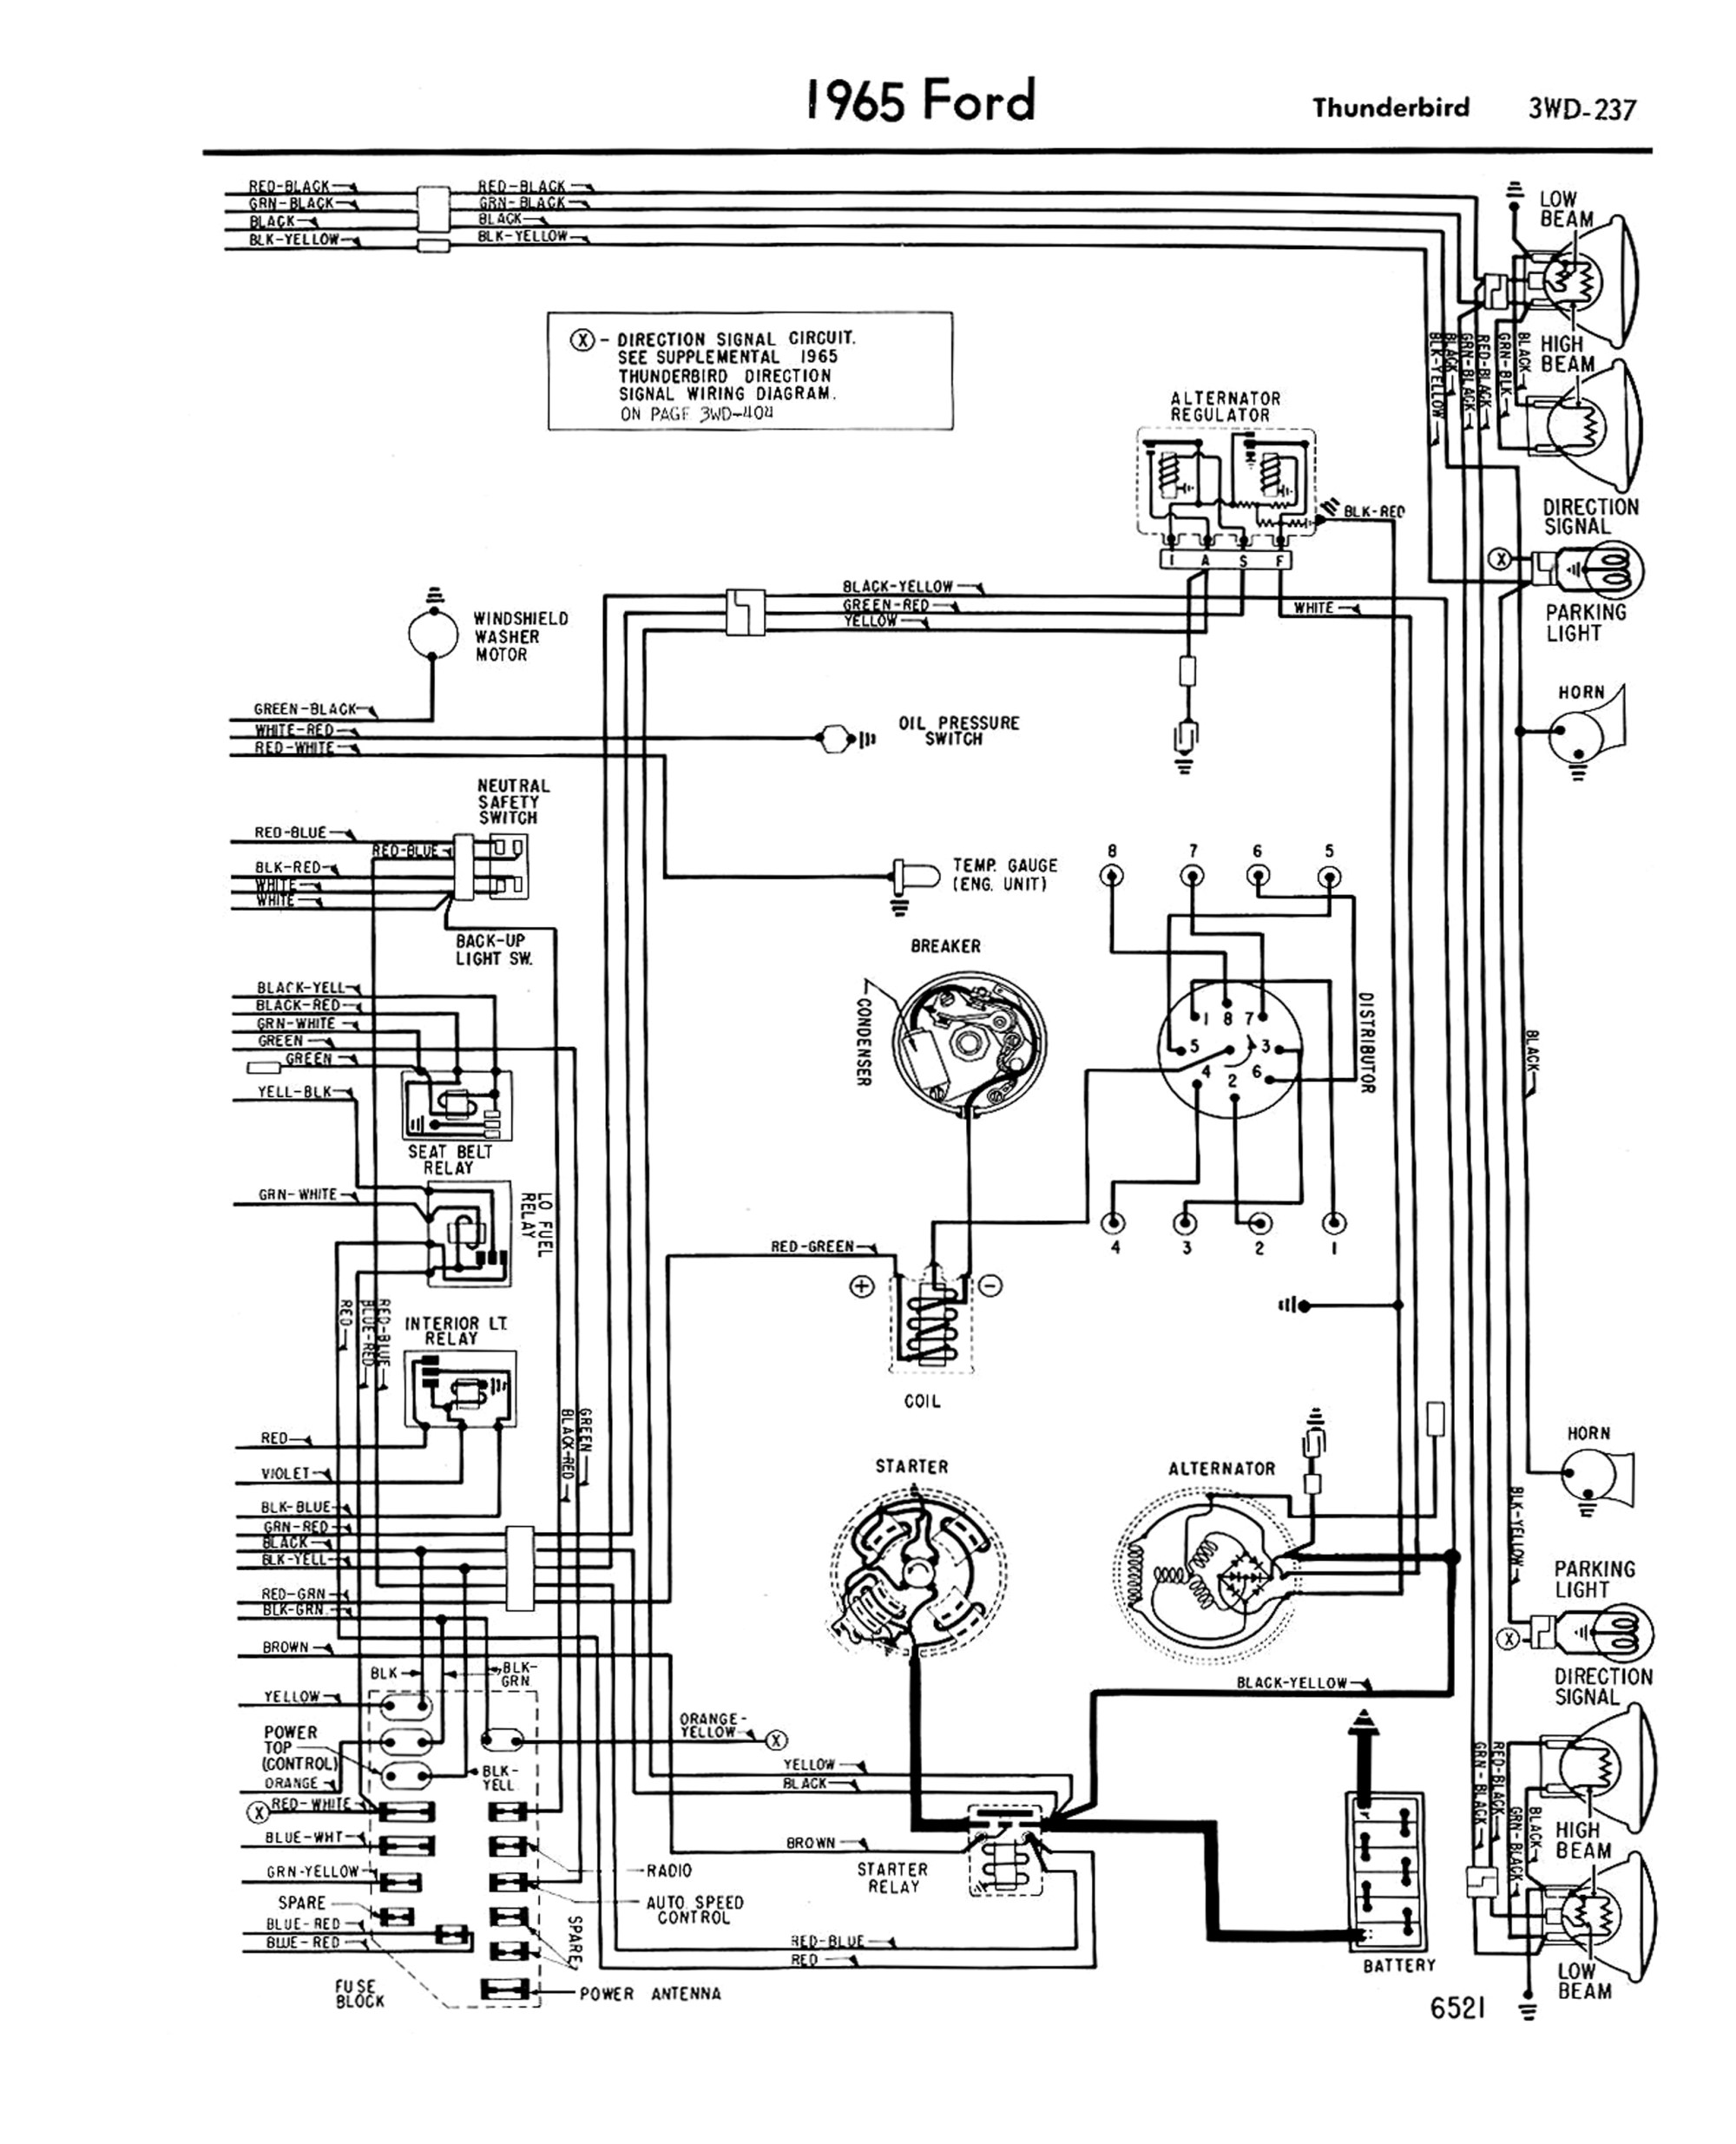 hight resolution of 1968 ford wiring diagram tail lights wiring diagrams 1965 f250 tail light socket wiring